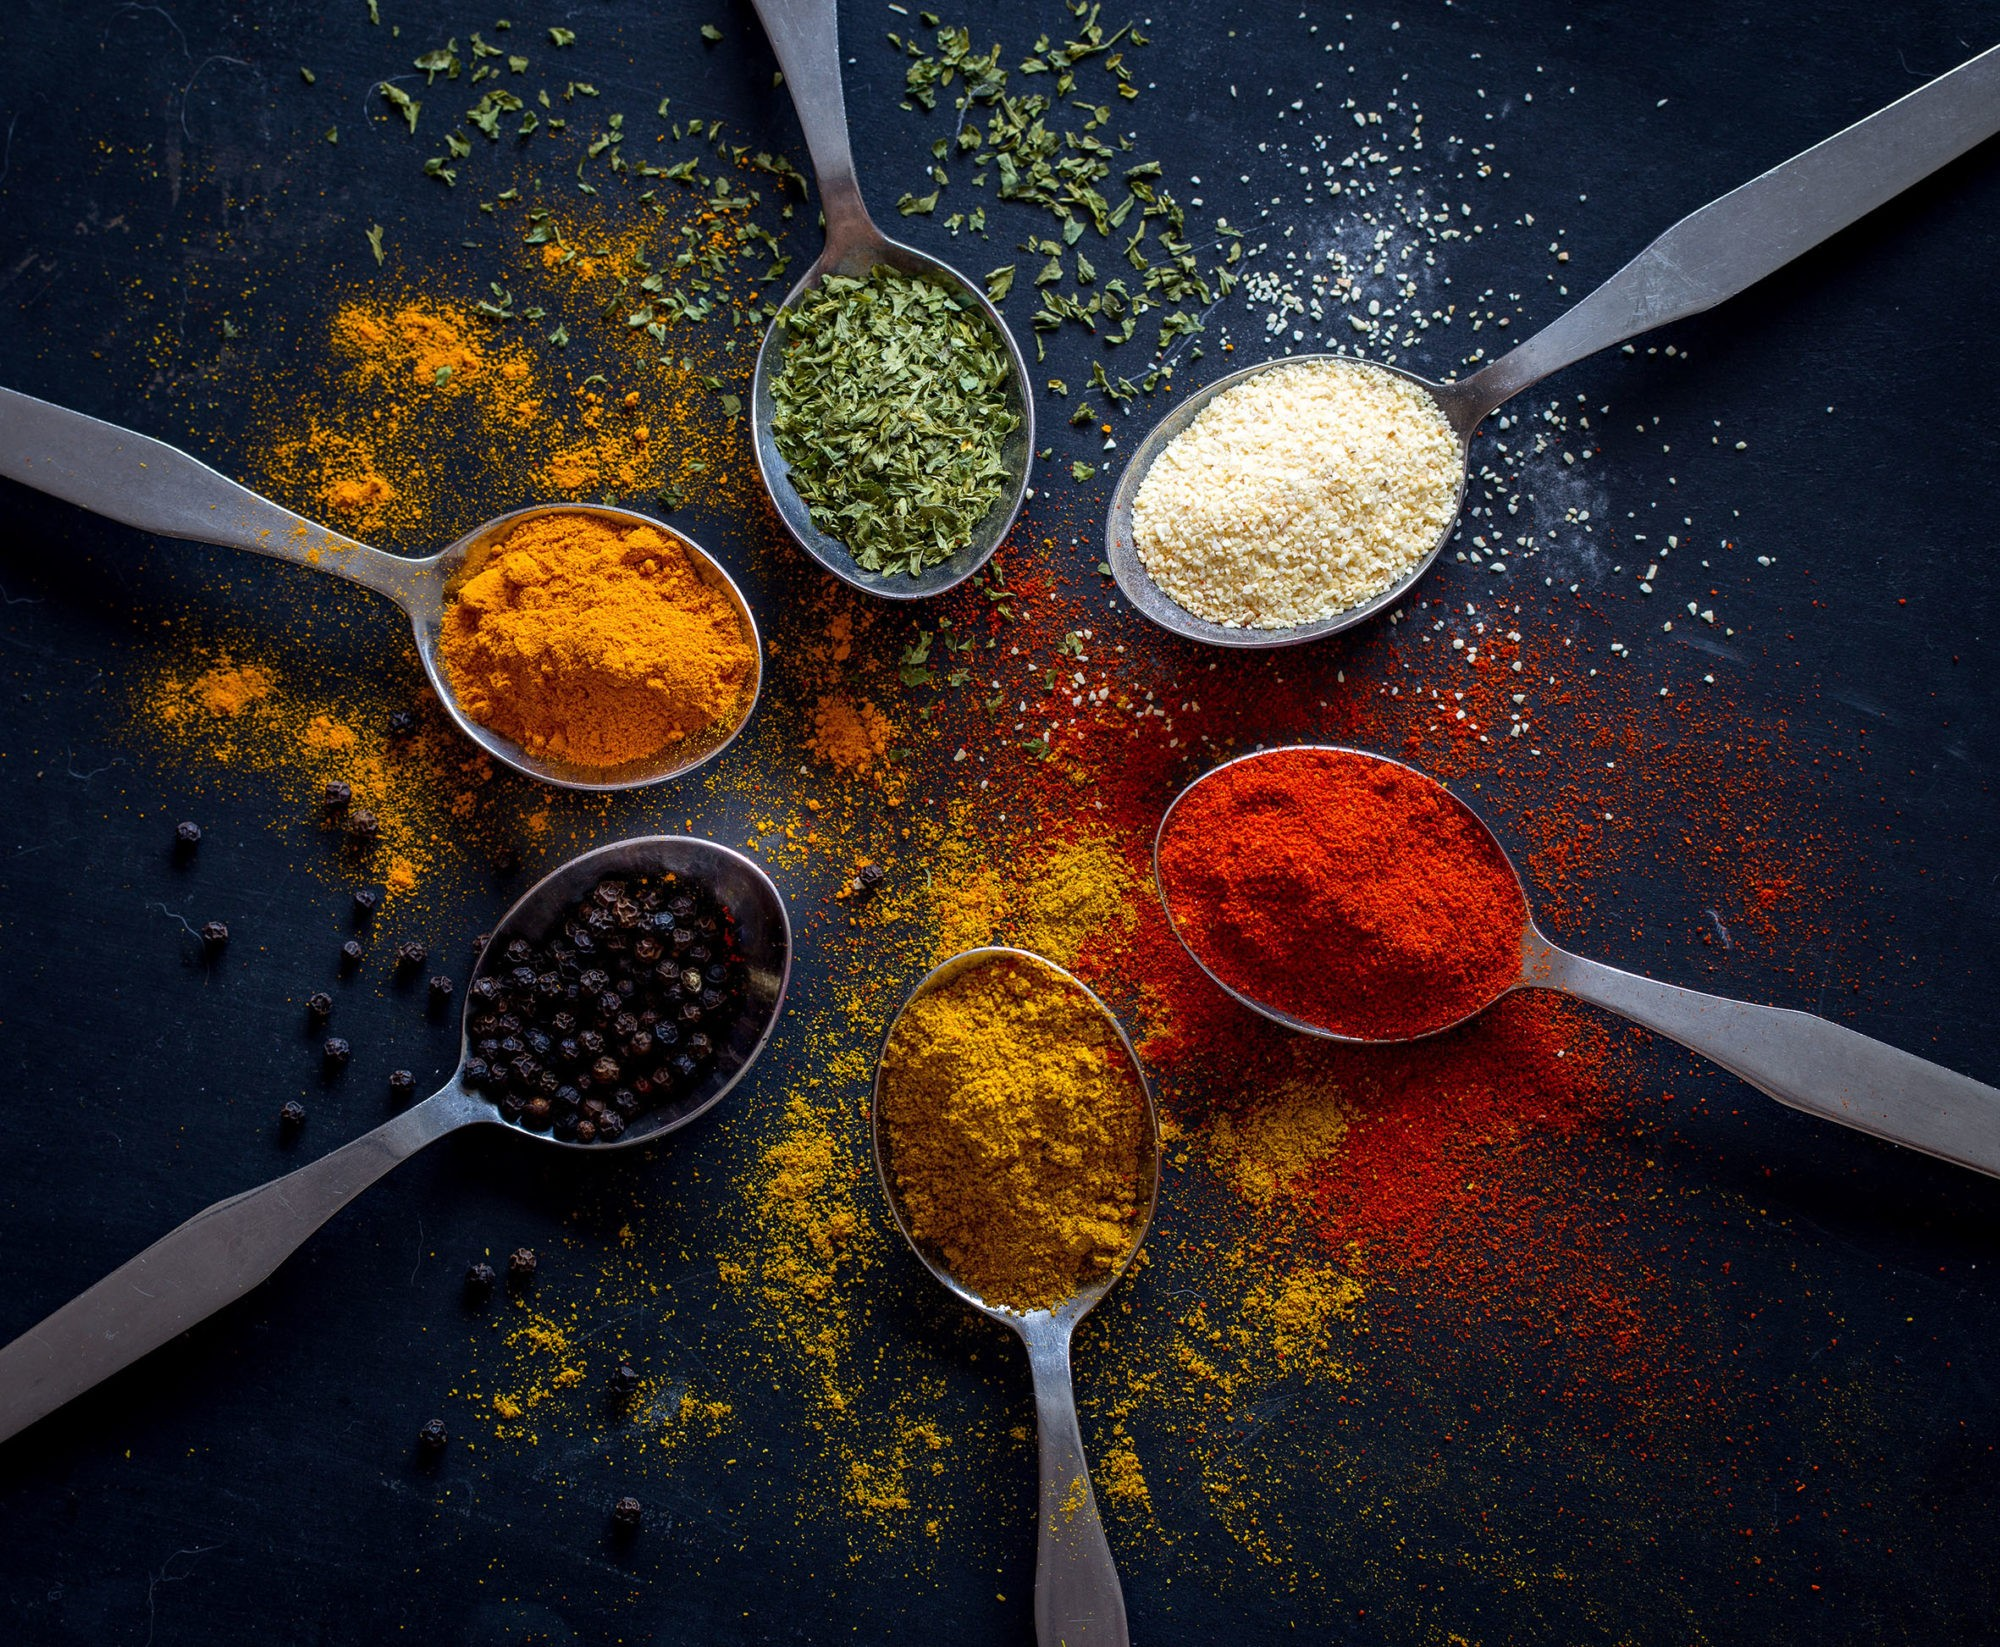 Open  Kitchen: The Love and Lure of Spice